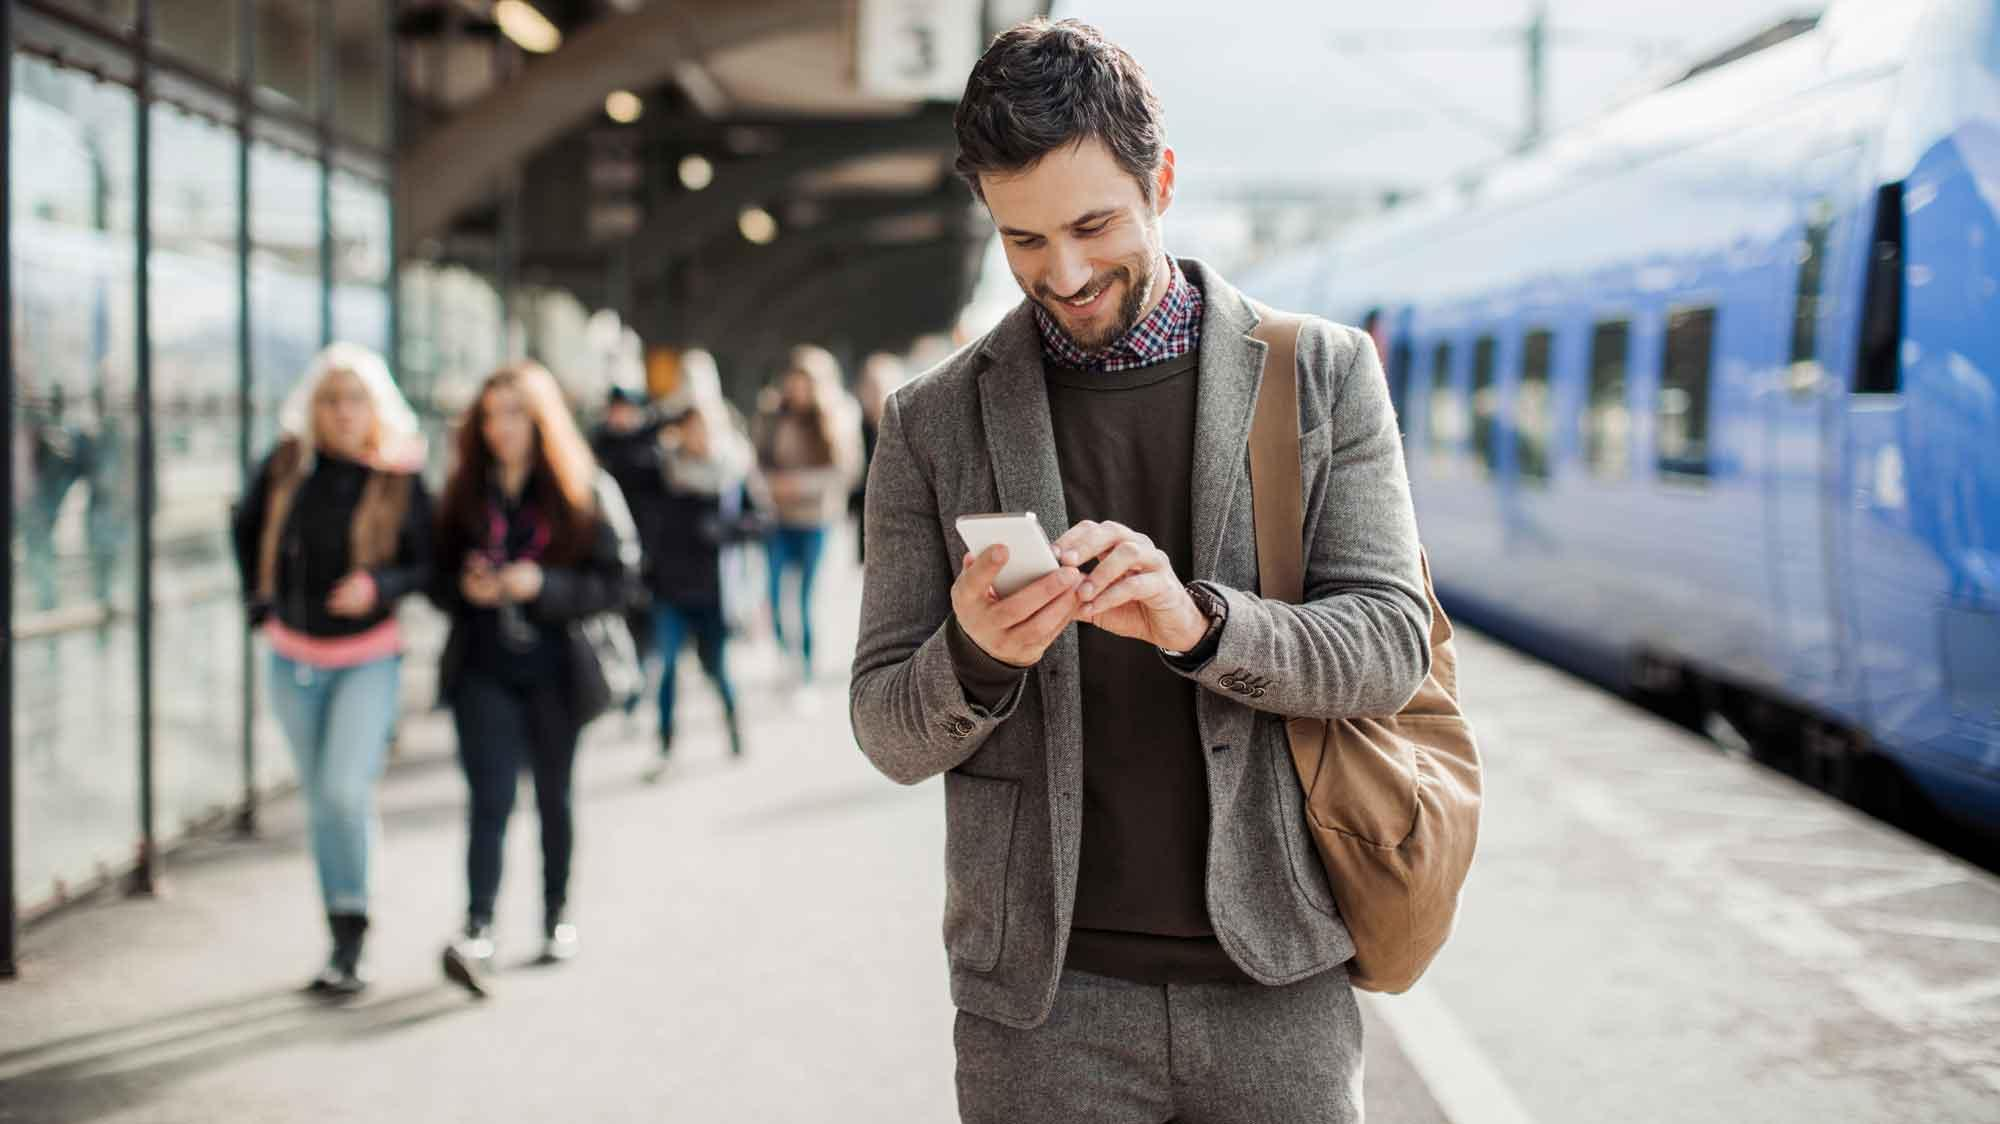 Businessman using mobile phone at train station